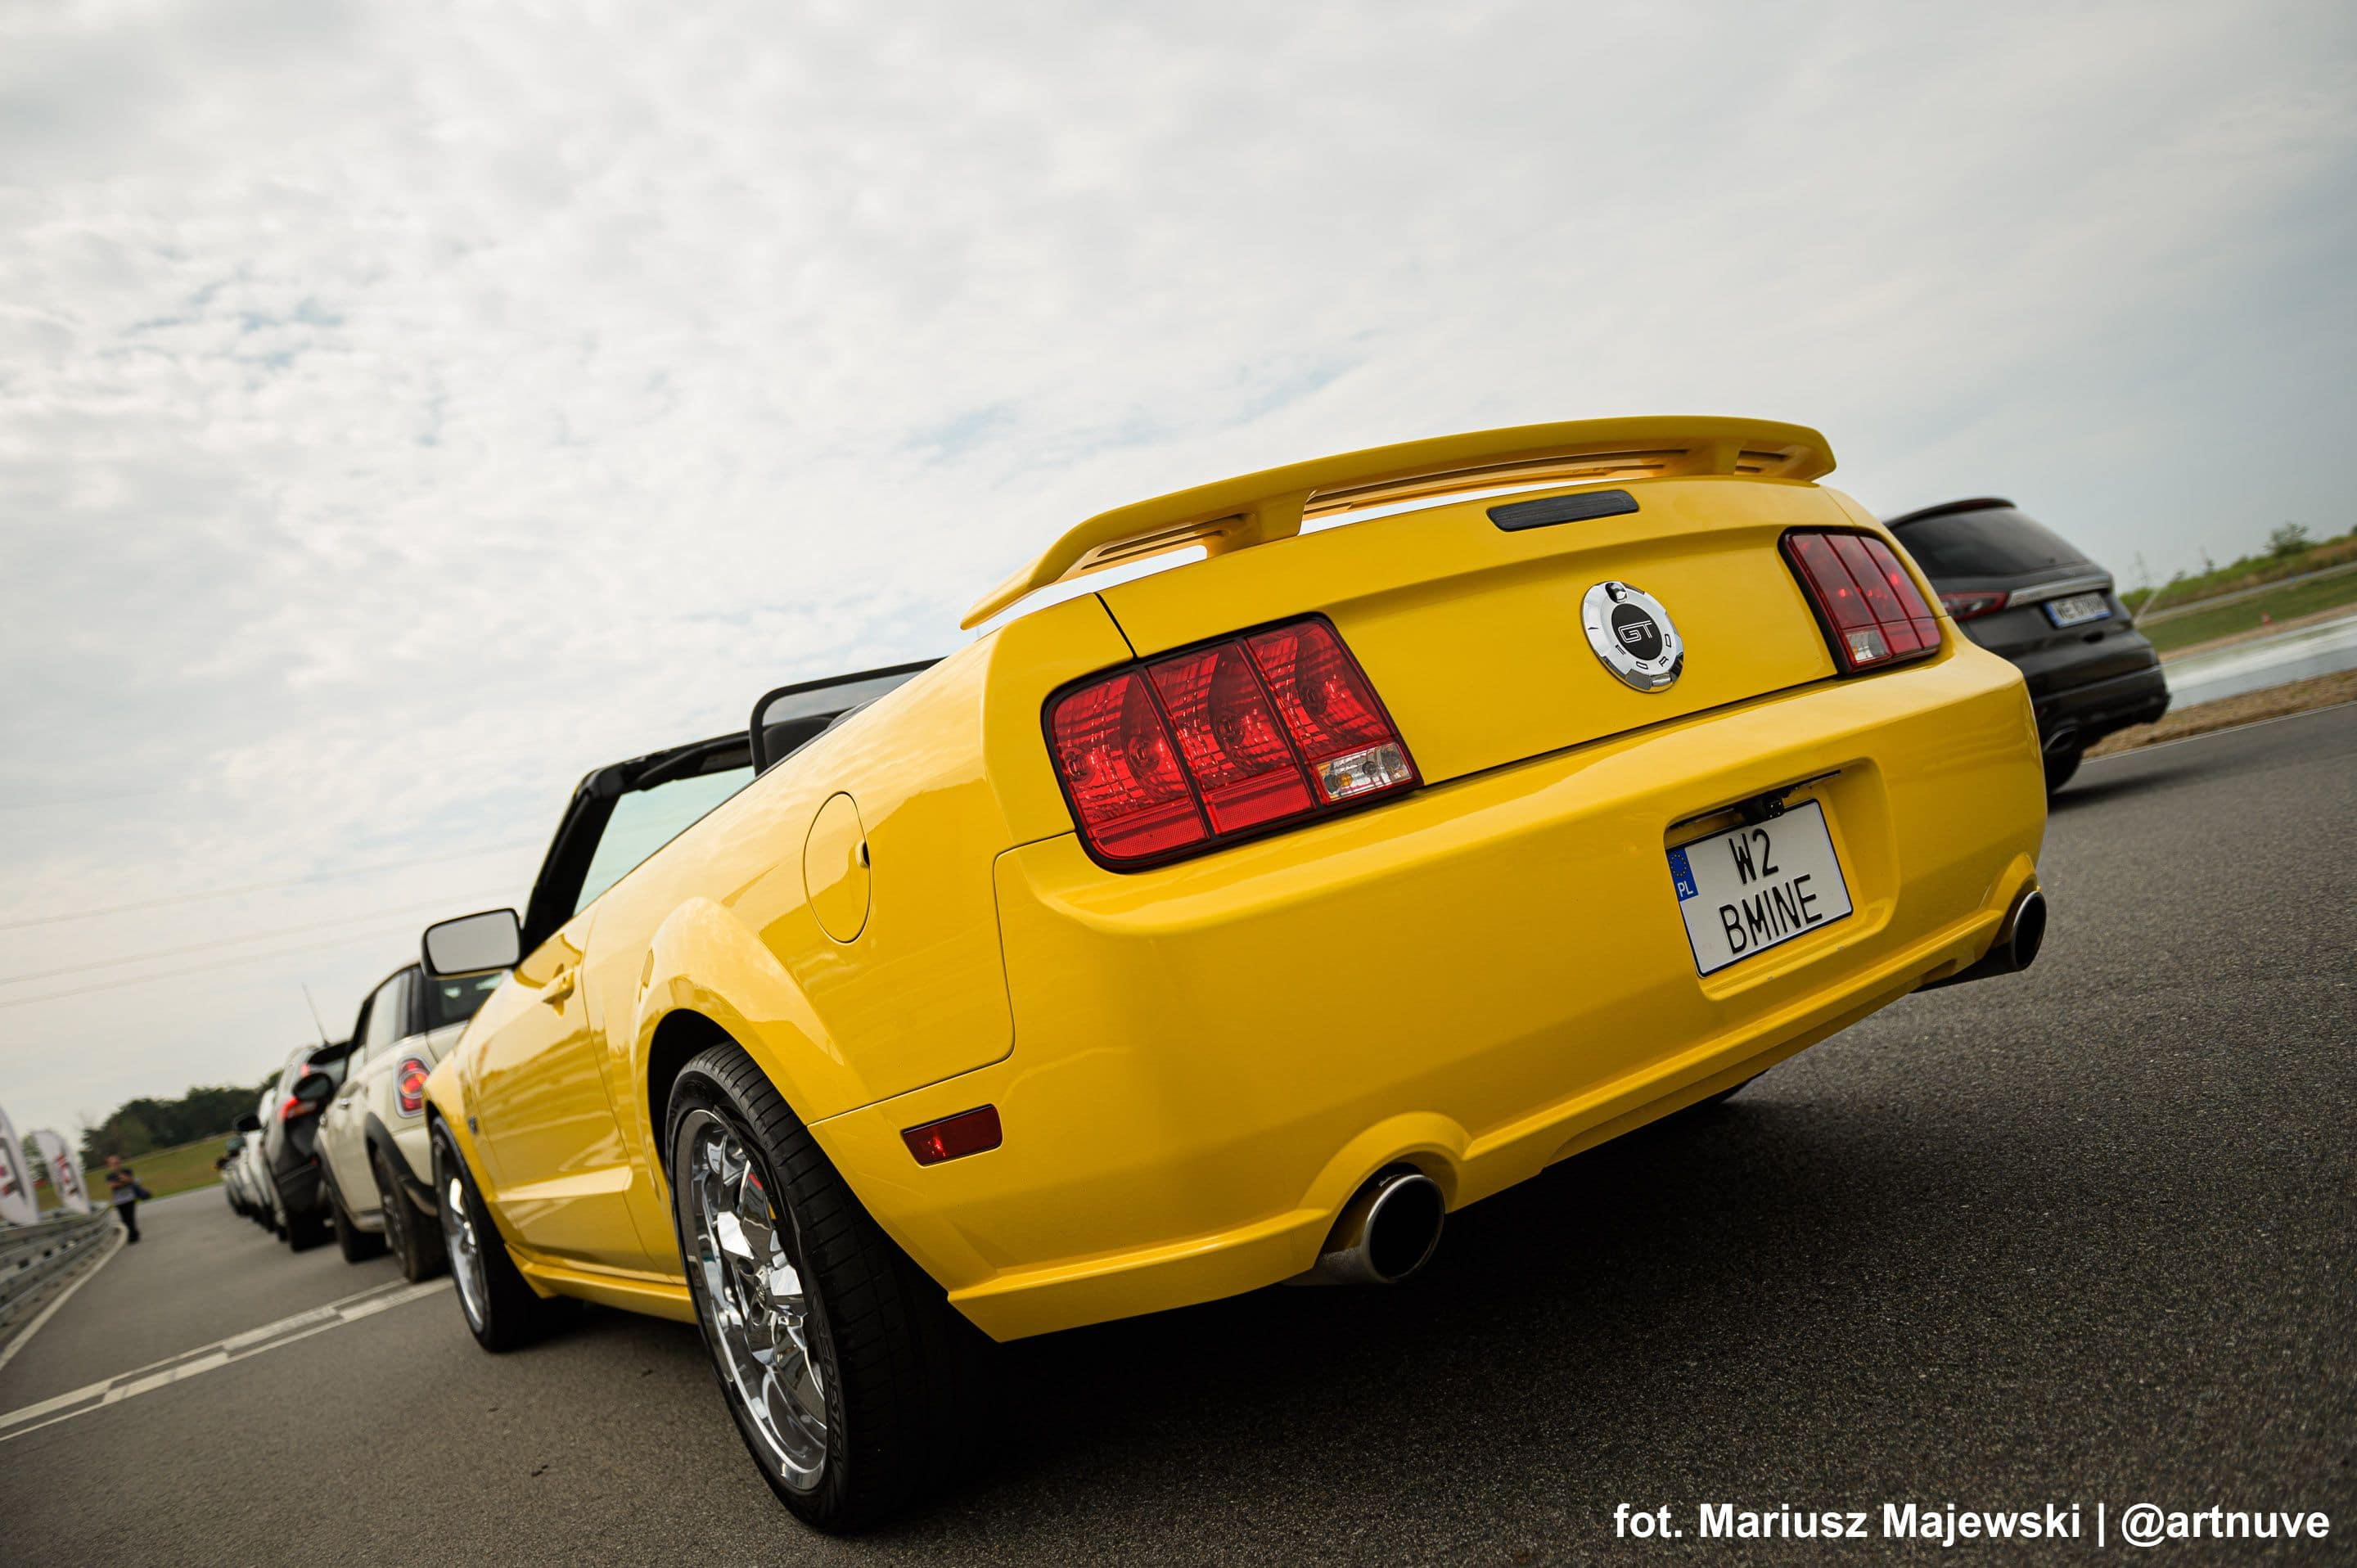 ford_mustang_na_torze_1